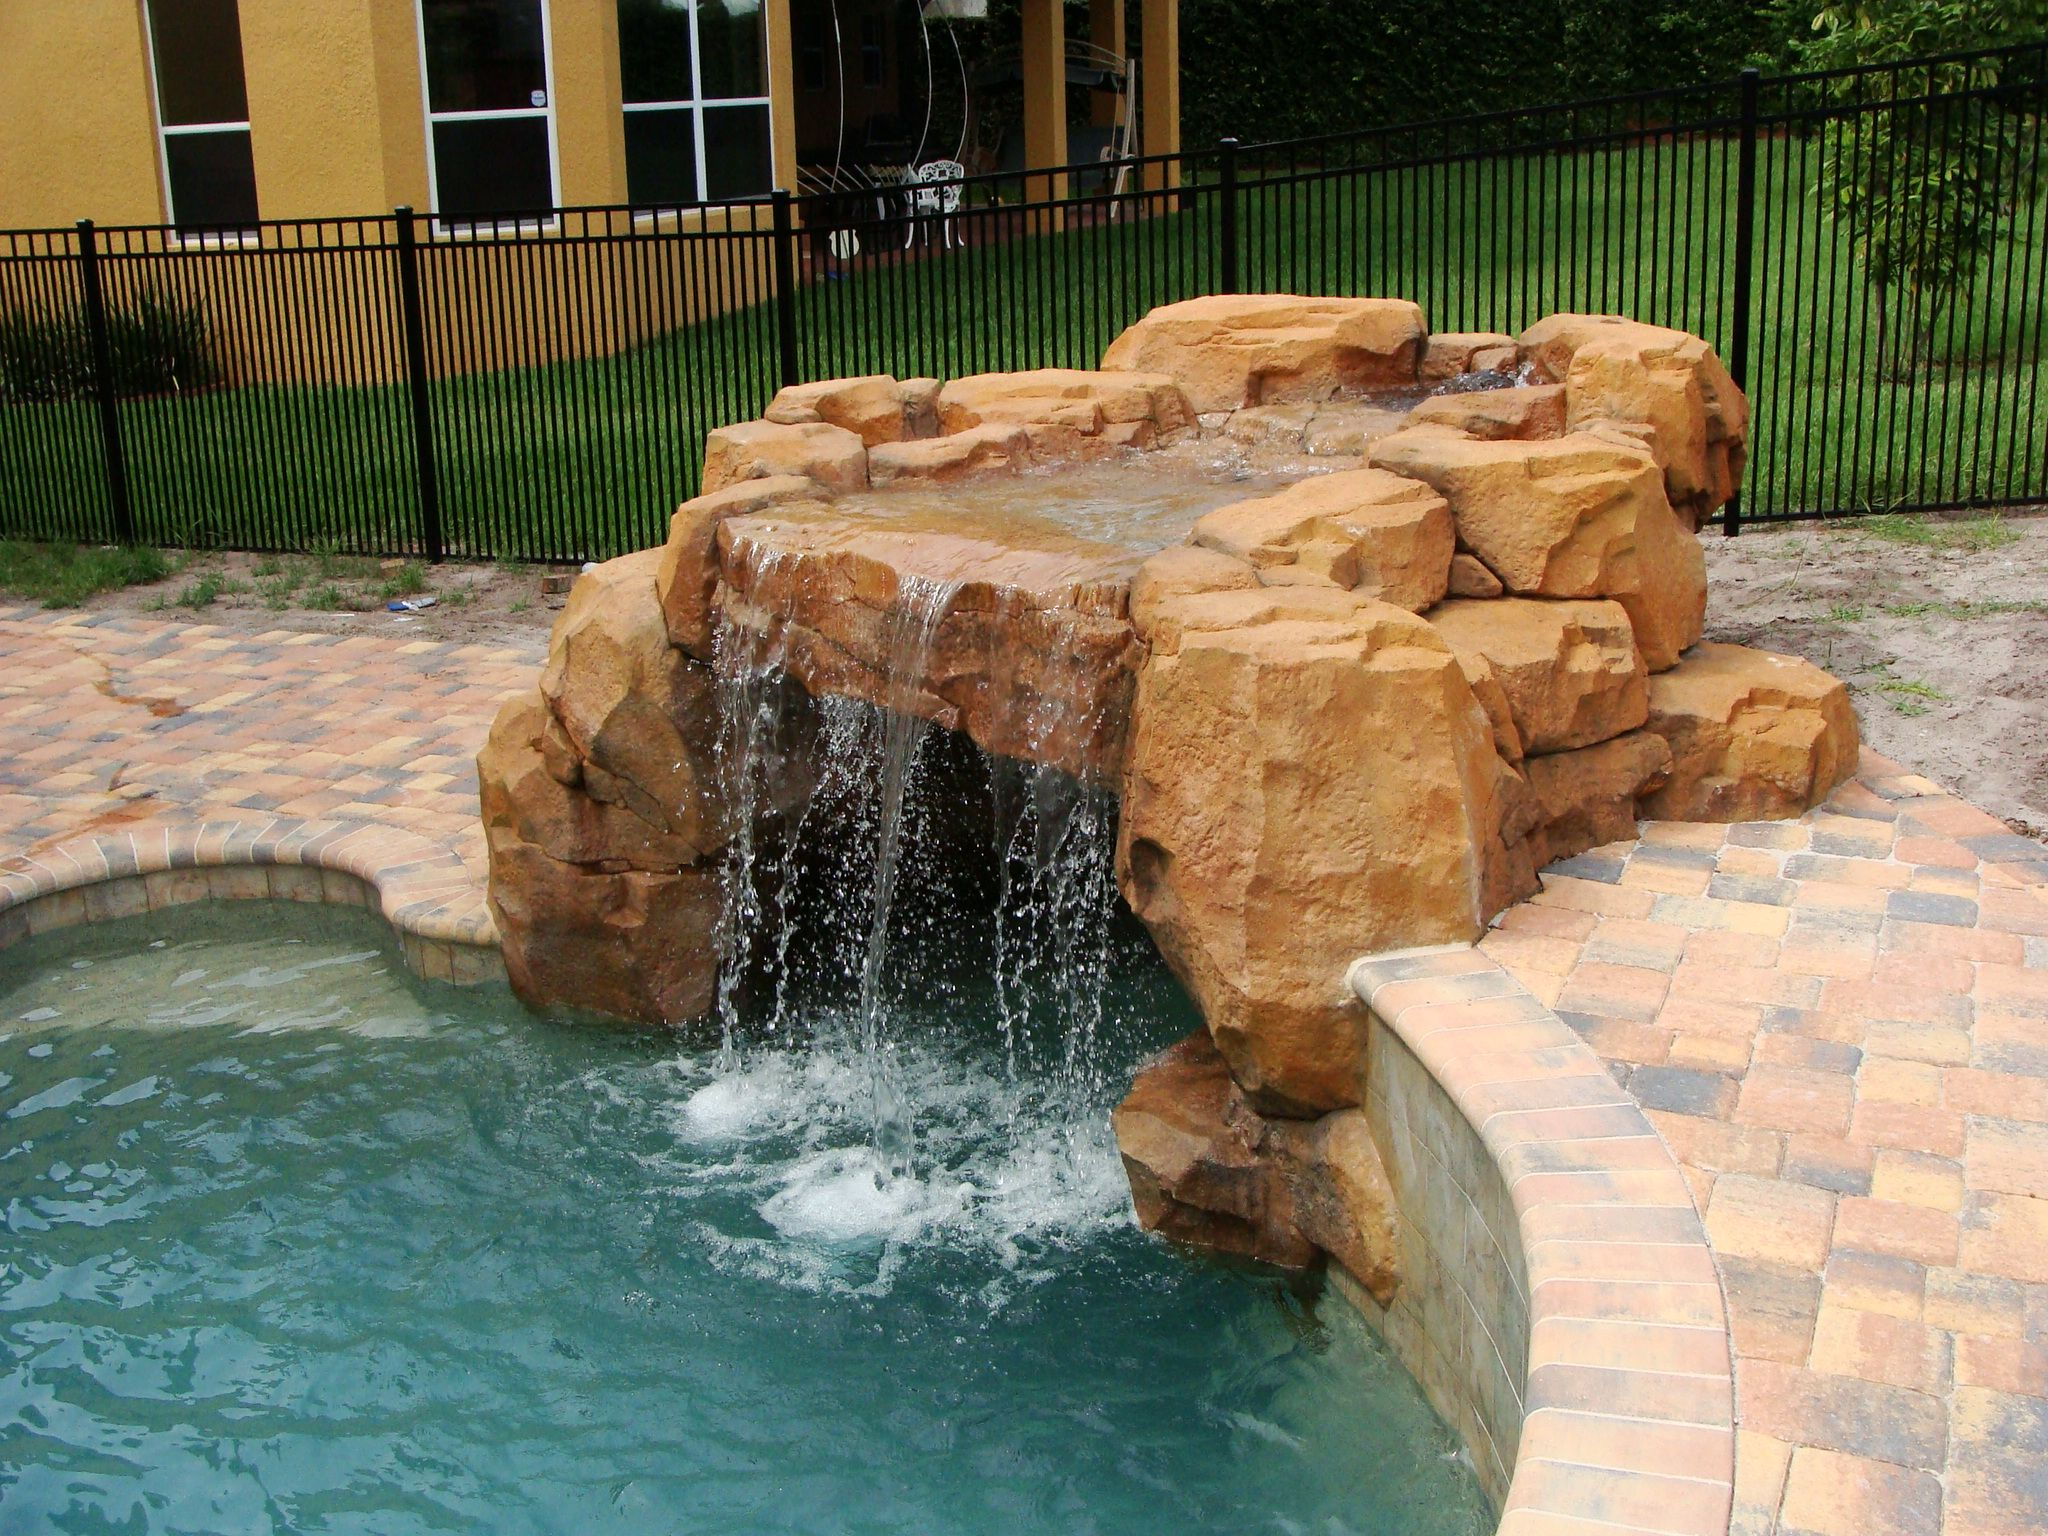 Concrete Waterfalls Outdoor Water Fountains Artificial Rock Waterfalls Water Fountains Outdoor Pool Waterfall Swimming Pool Waterfall